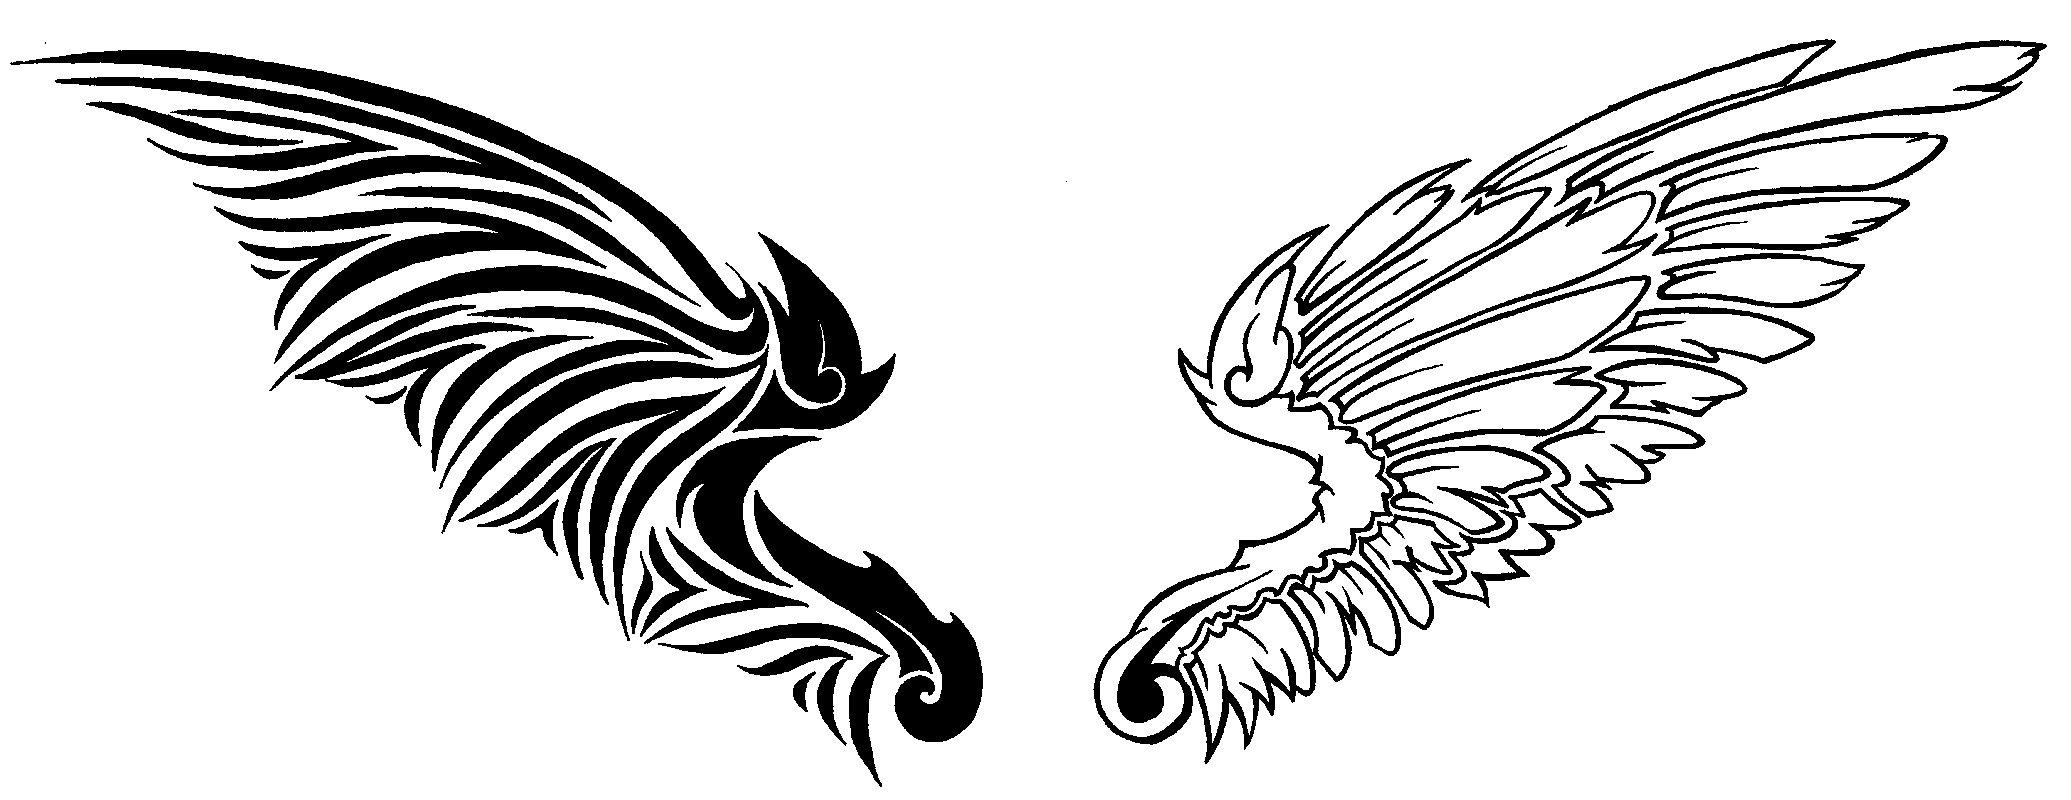 Angels and demons wing clipart clipart images gallery for.